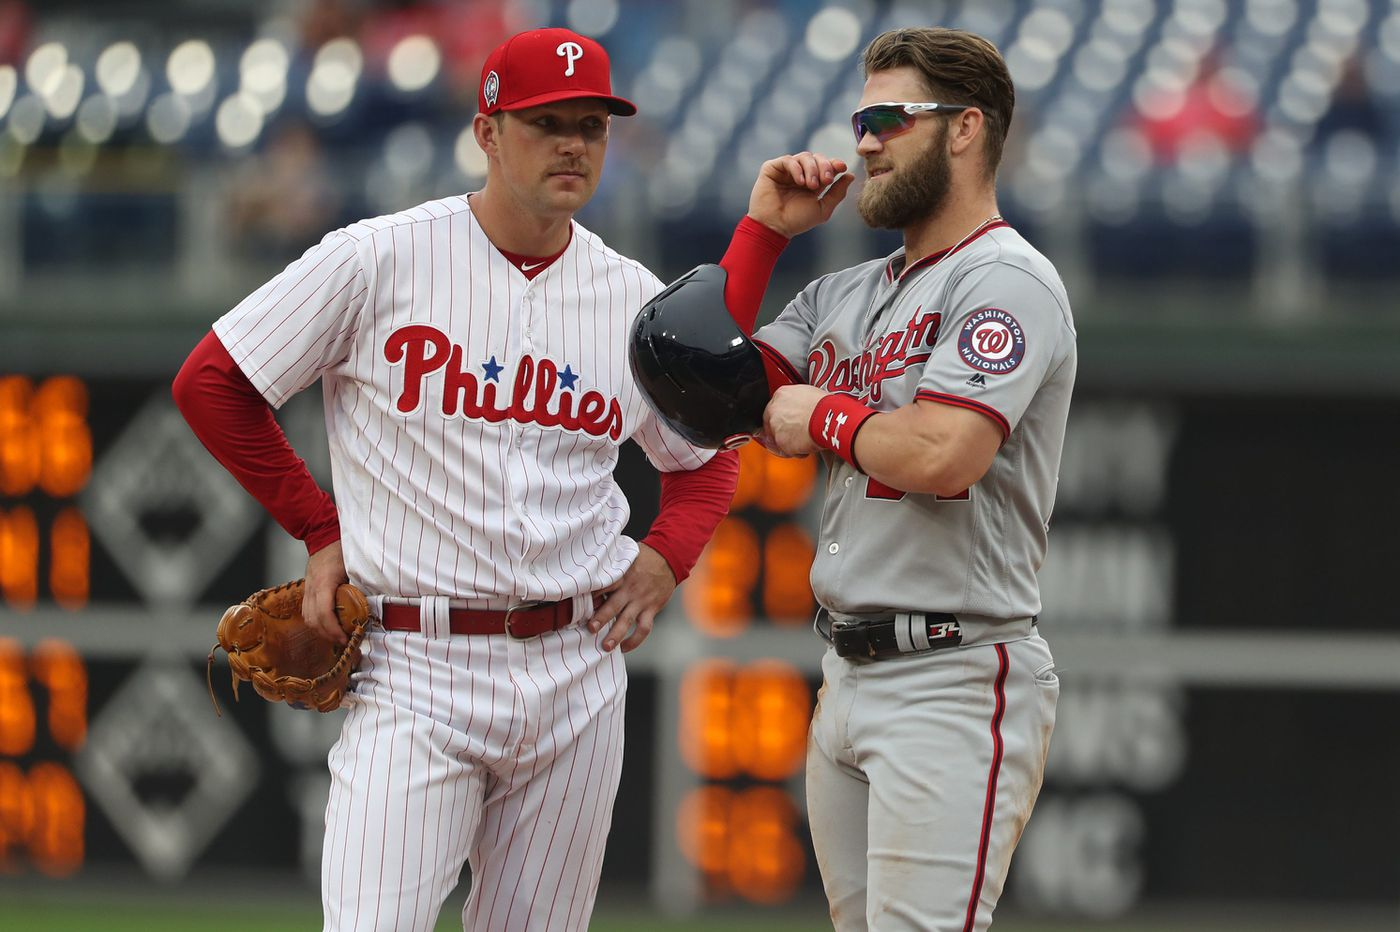 Phillies could replace Nationals as the new 'Team Boras' | Extra Innings